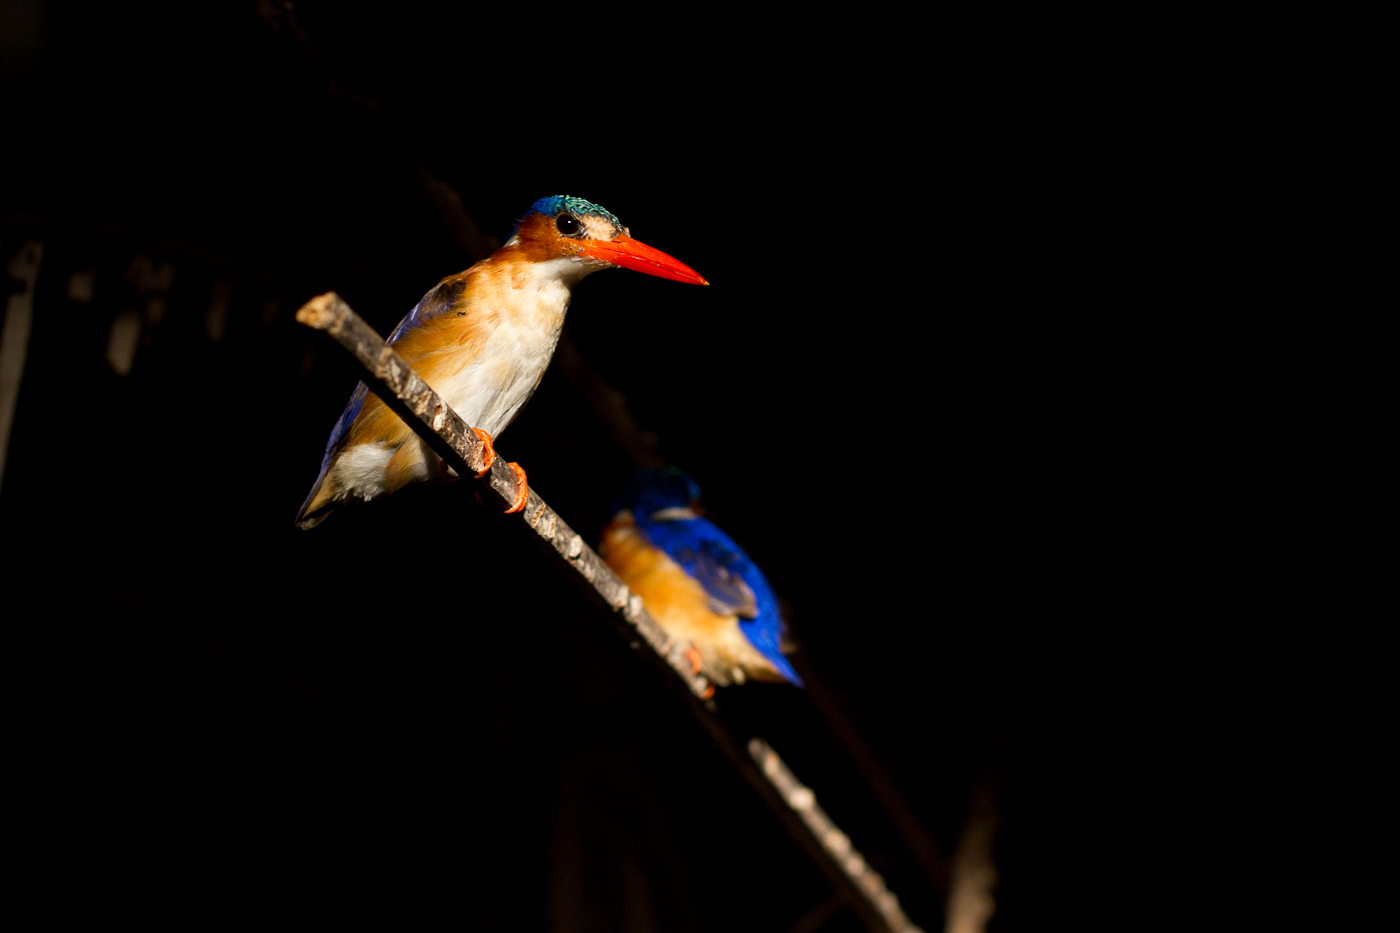 Malachite Kingfisher, Okavango River, Botswana, Oct. 2013